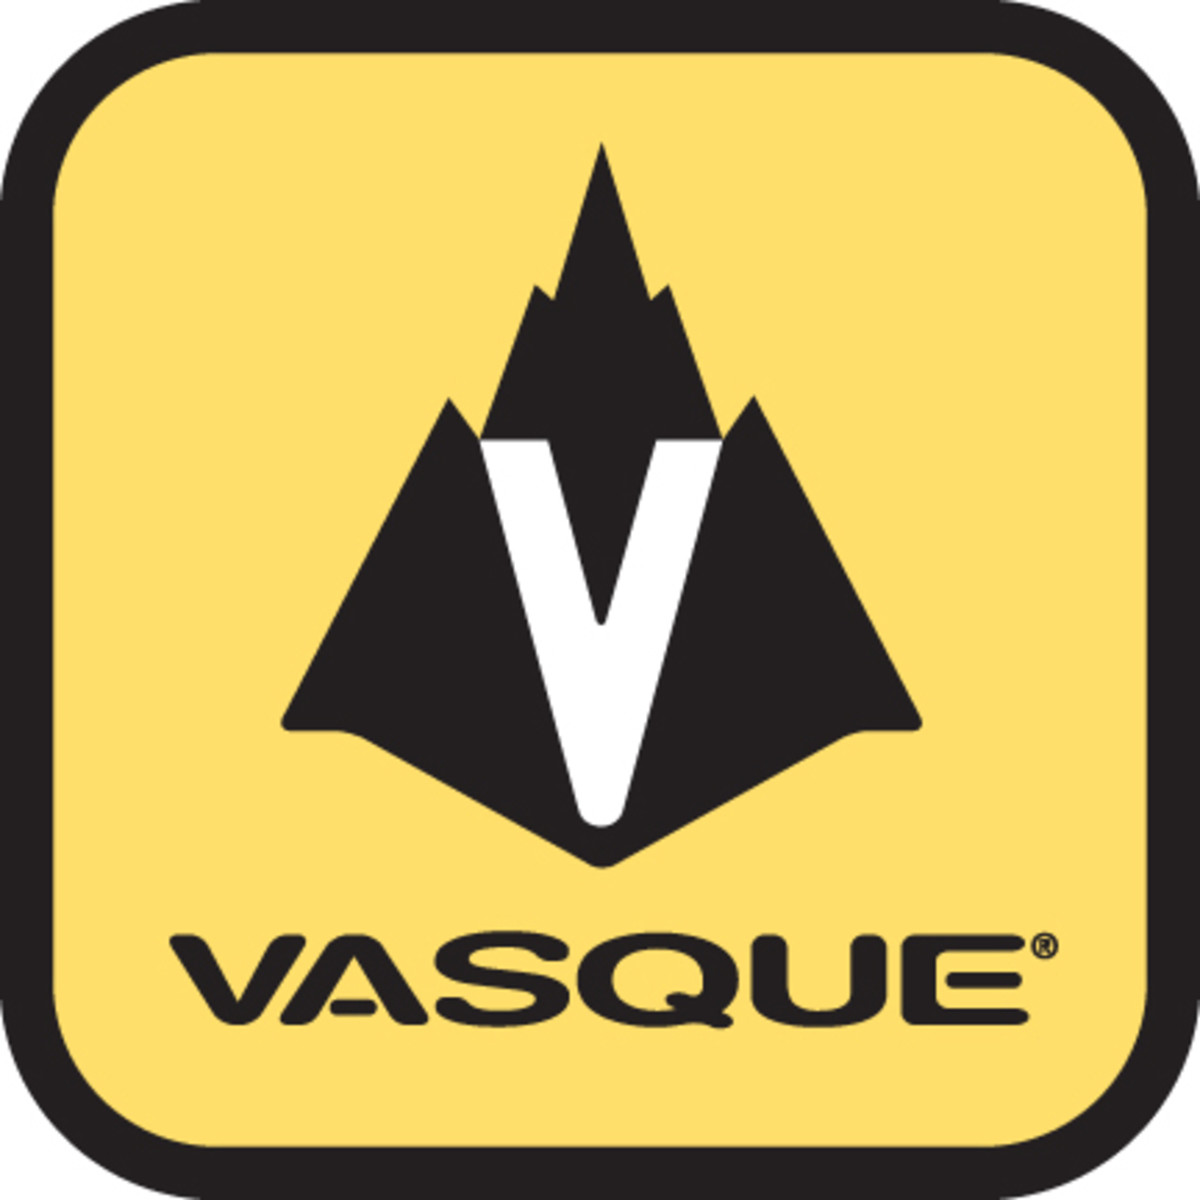 vasque logo.jpg